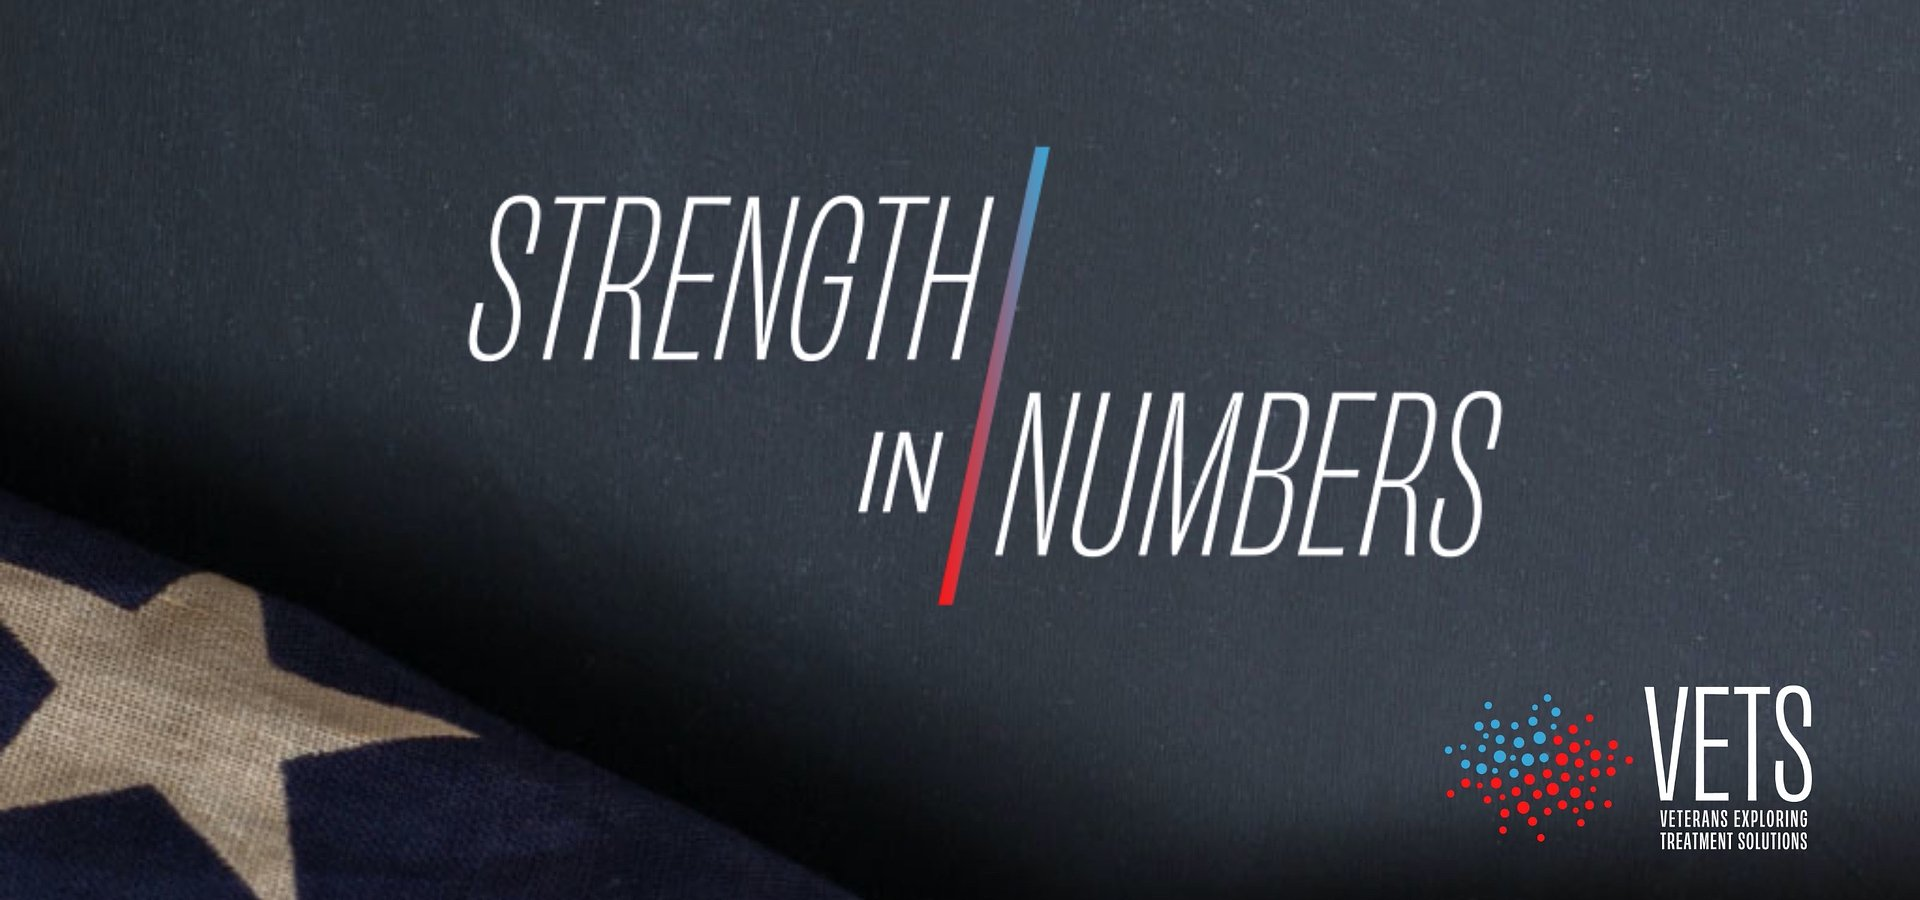 MEDIA ADVISORY: Strength In Numbers Gala to End Veteran Suicide